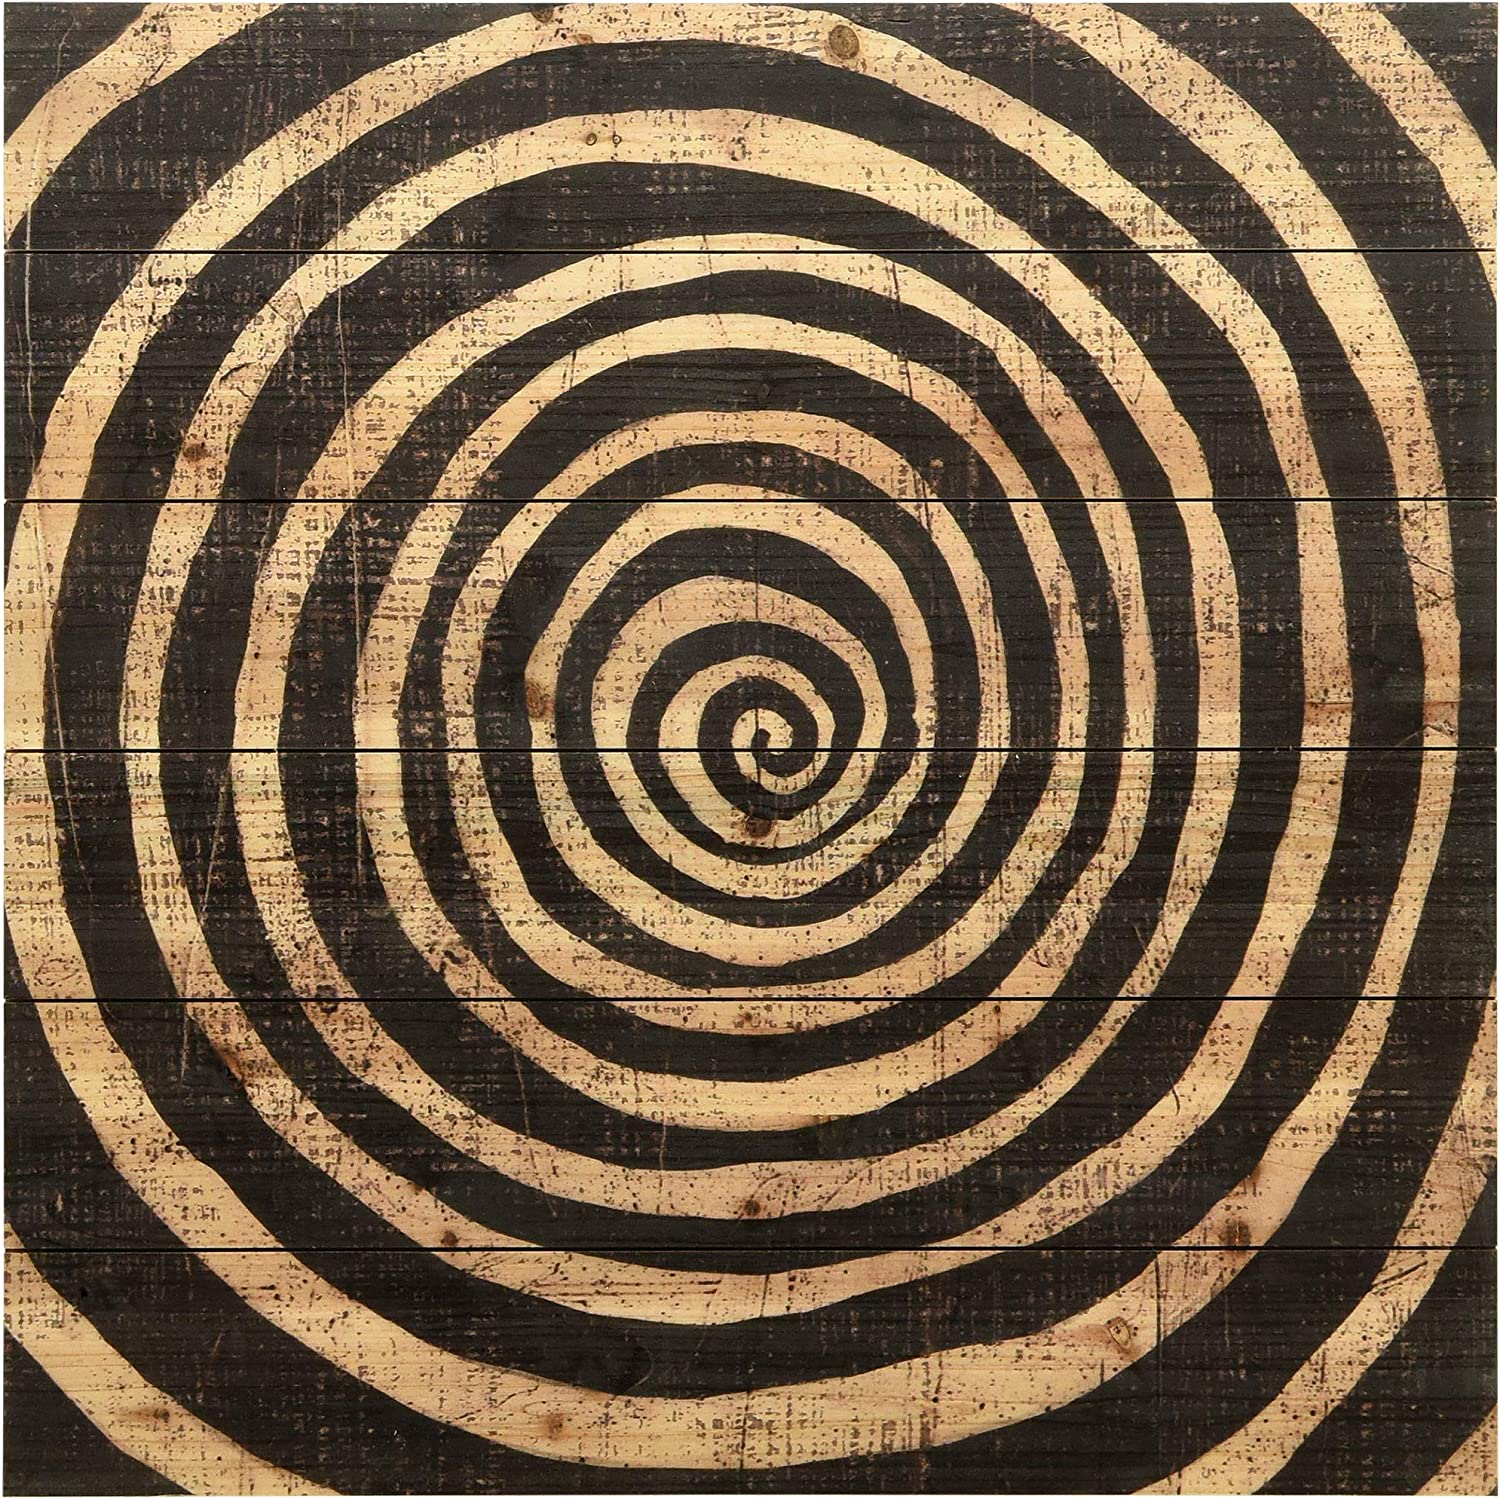 Empire Art Direct Abstract Arte de Legno Digital Print on Solid Wood Wall Décor, 24 in. x 1.5 in. x 24 in, Black, Wooden